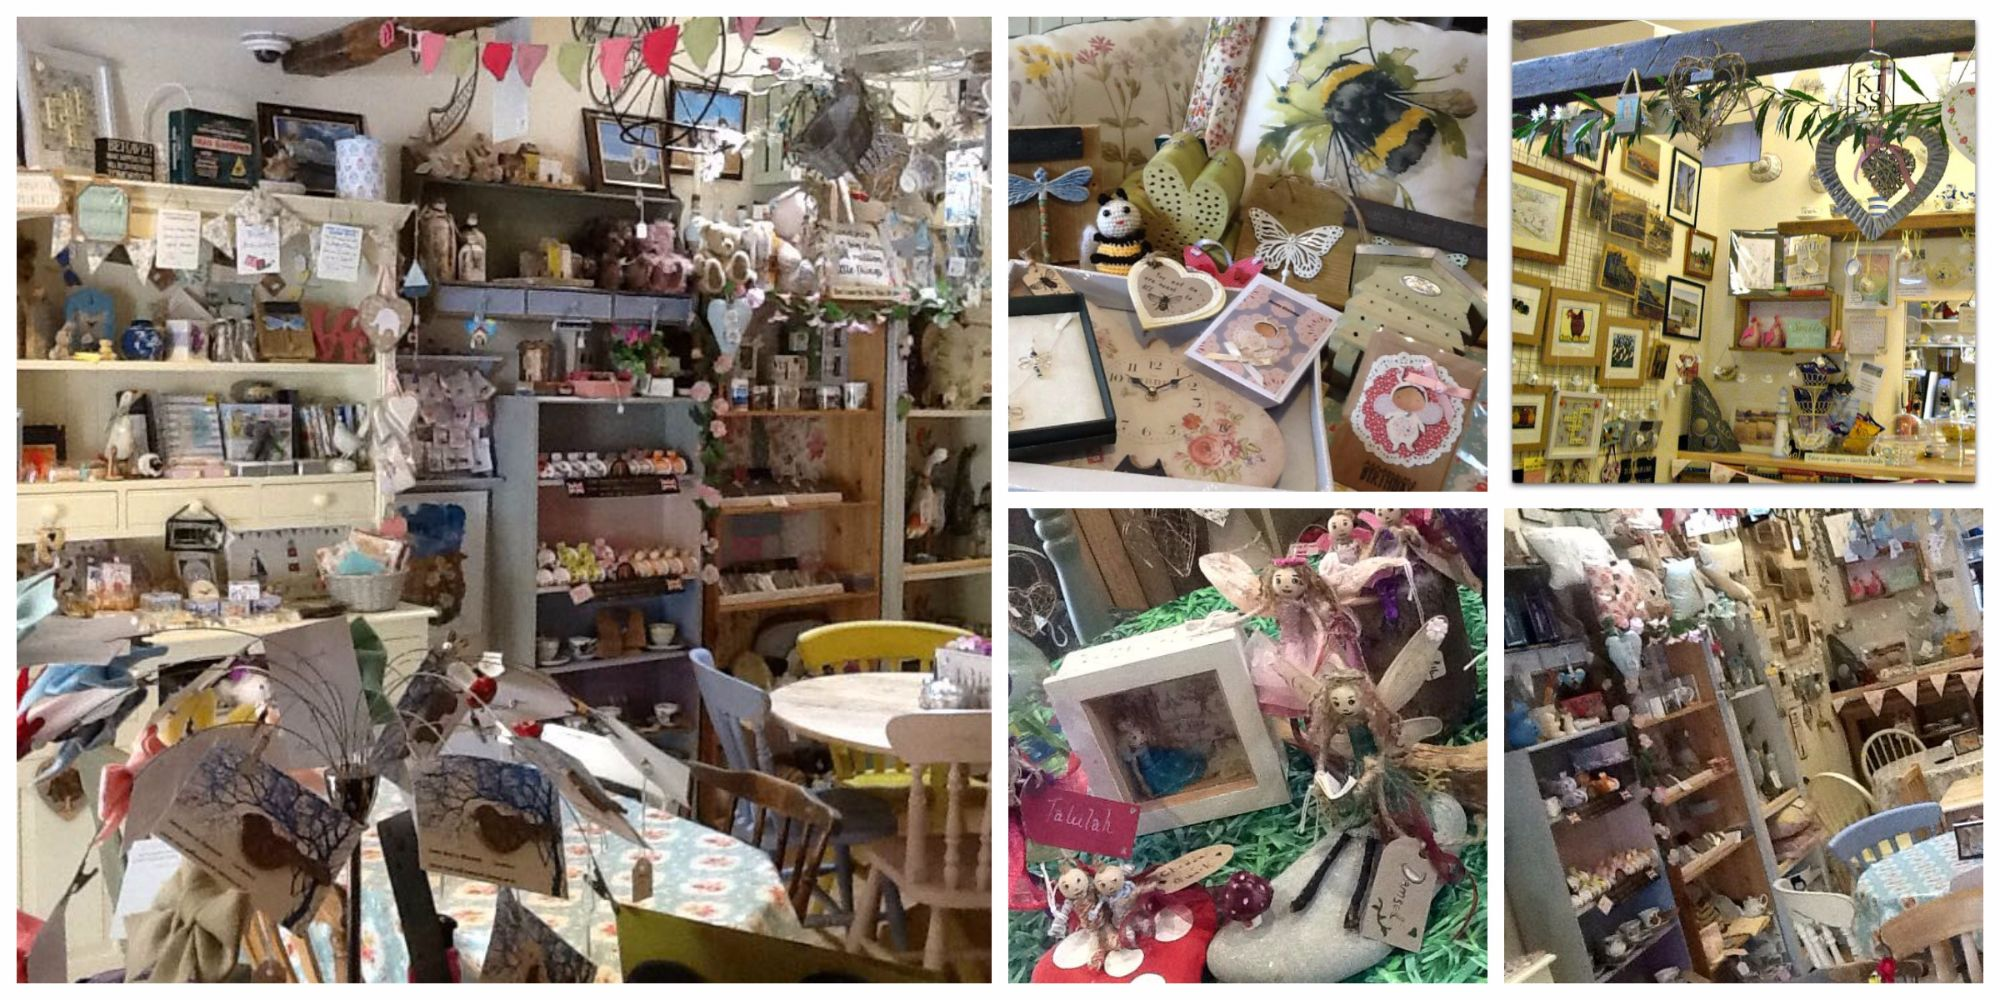 Craft & Gift Shop at Prima Rosa, Salhouse, Norwich, Norfolk